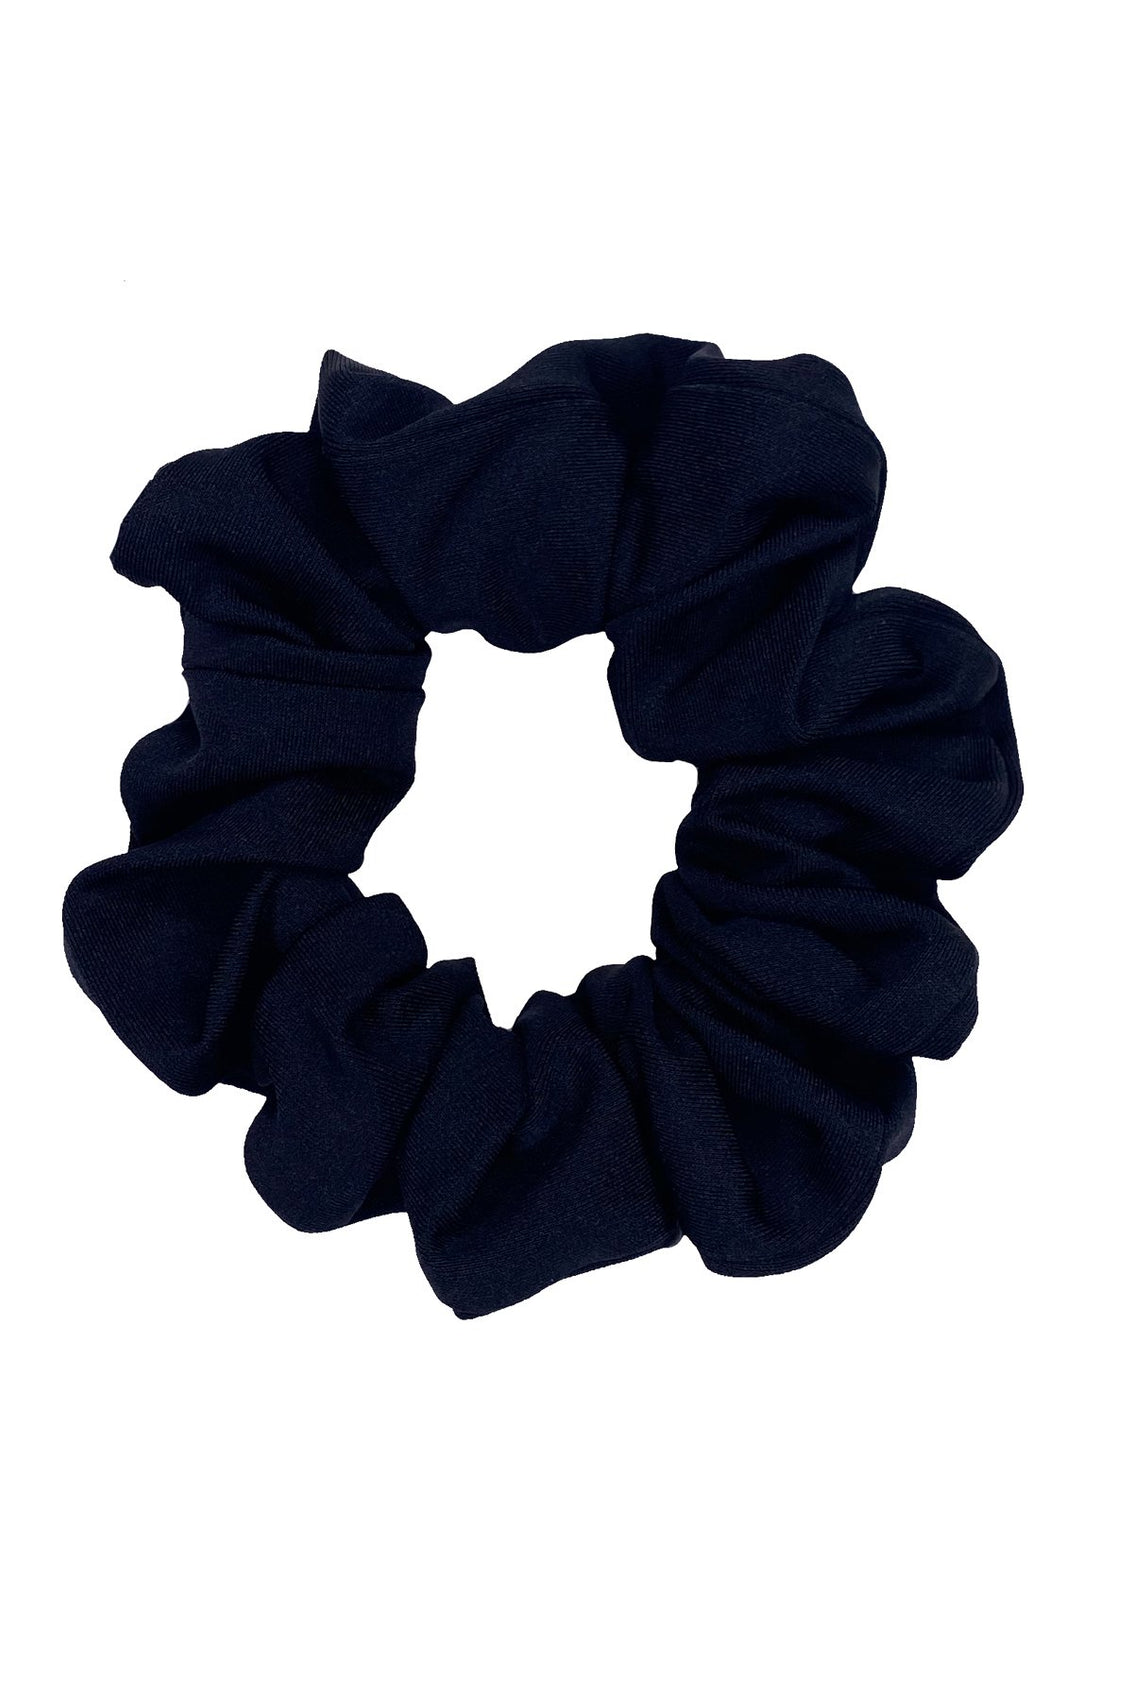 COSITA BUENA - Scrunchie • Black